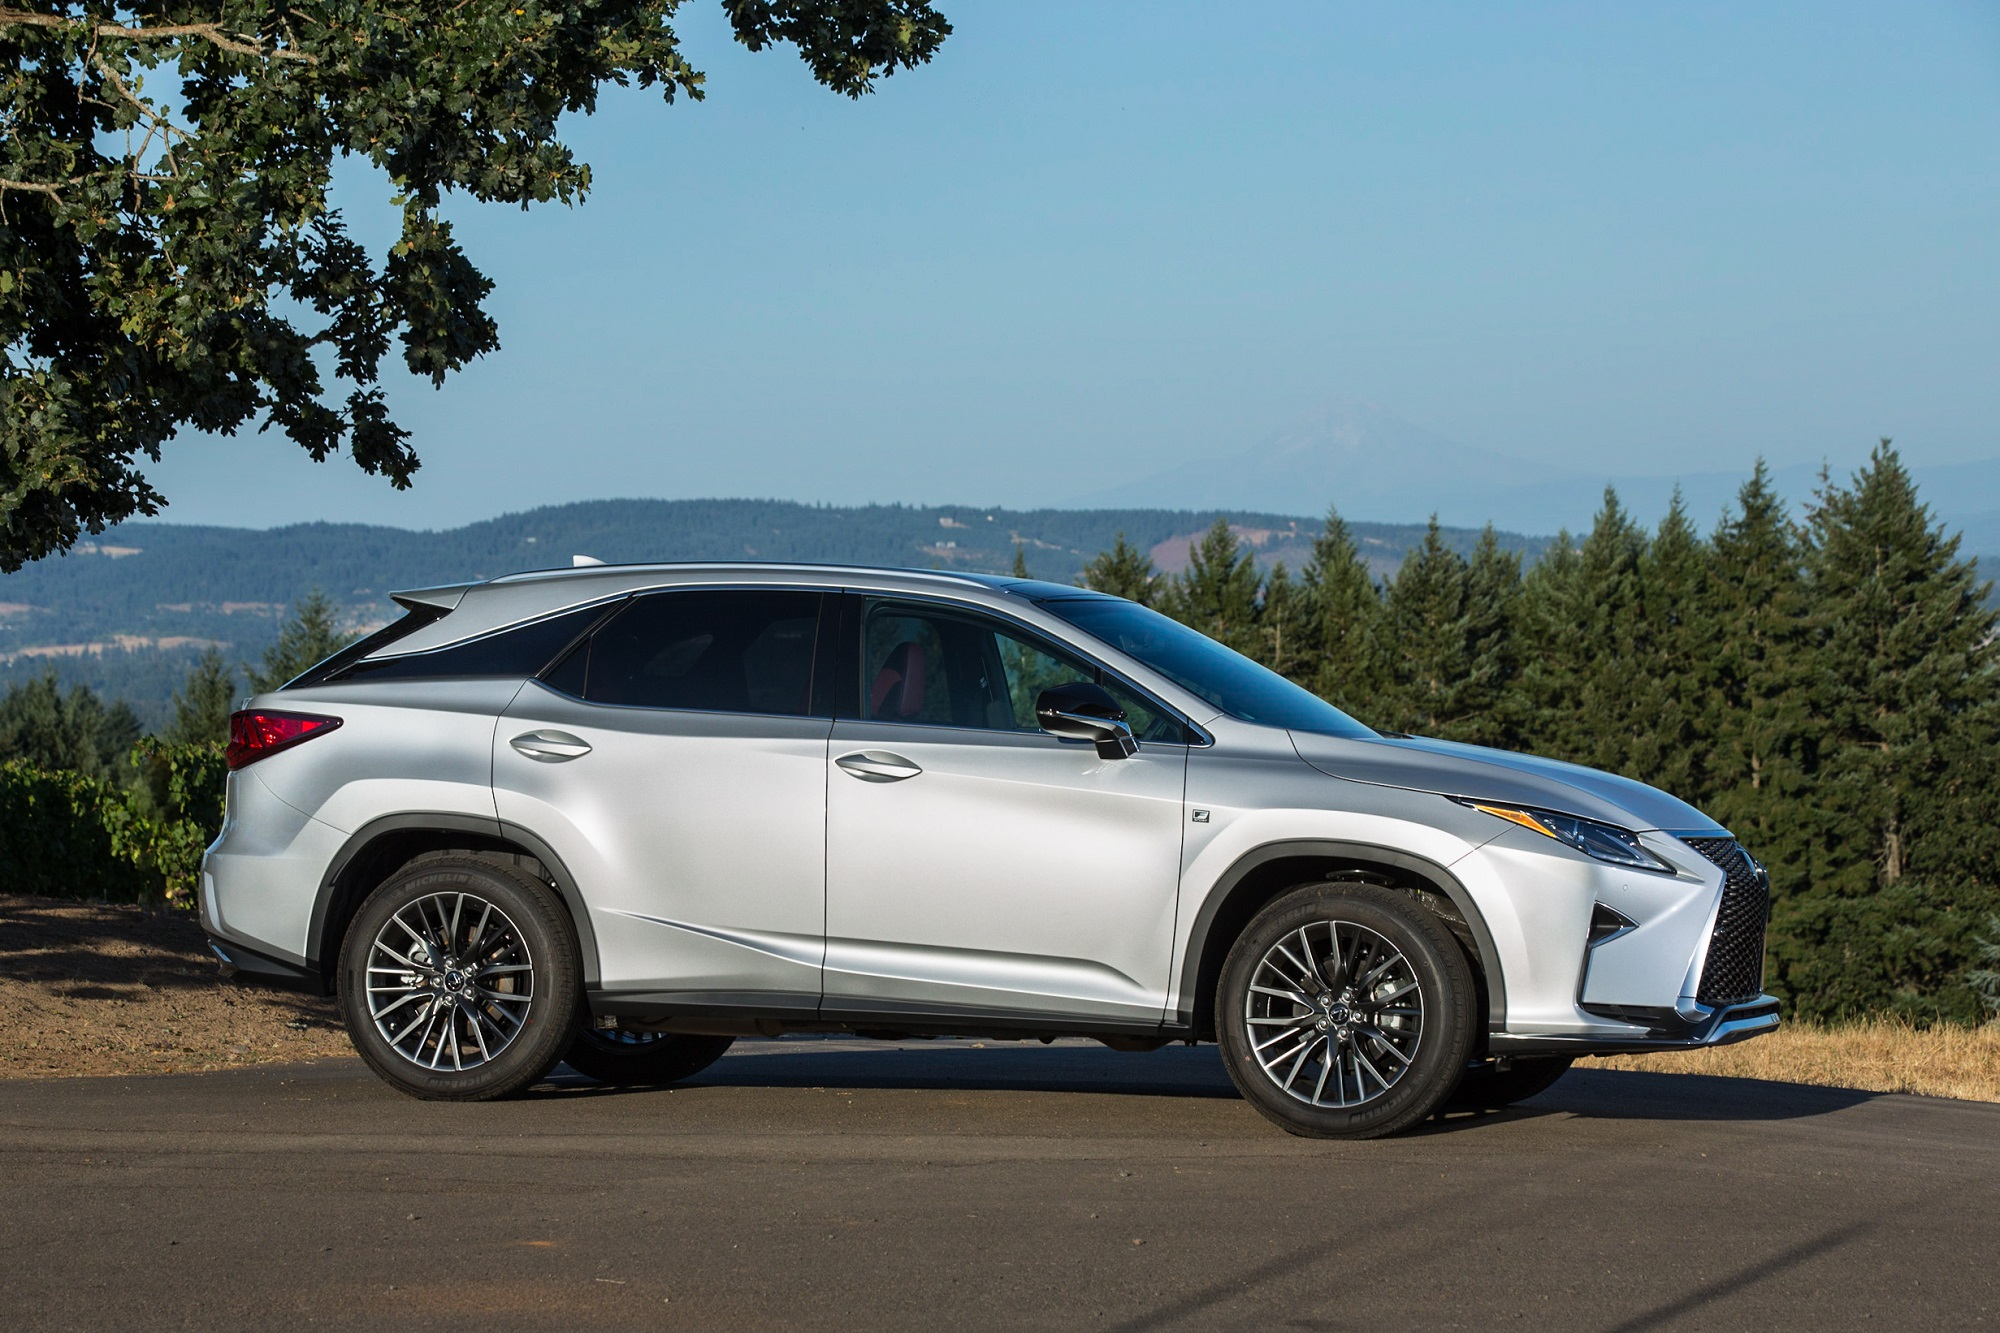 2016 lexus rx350 debuts with ad targeting lgbt drivers. Black Bedroom Furniture Sets. Home Design Ideas